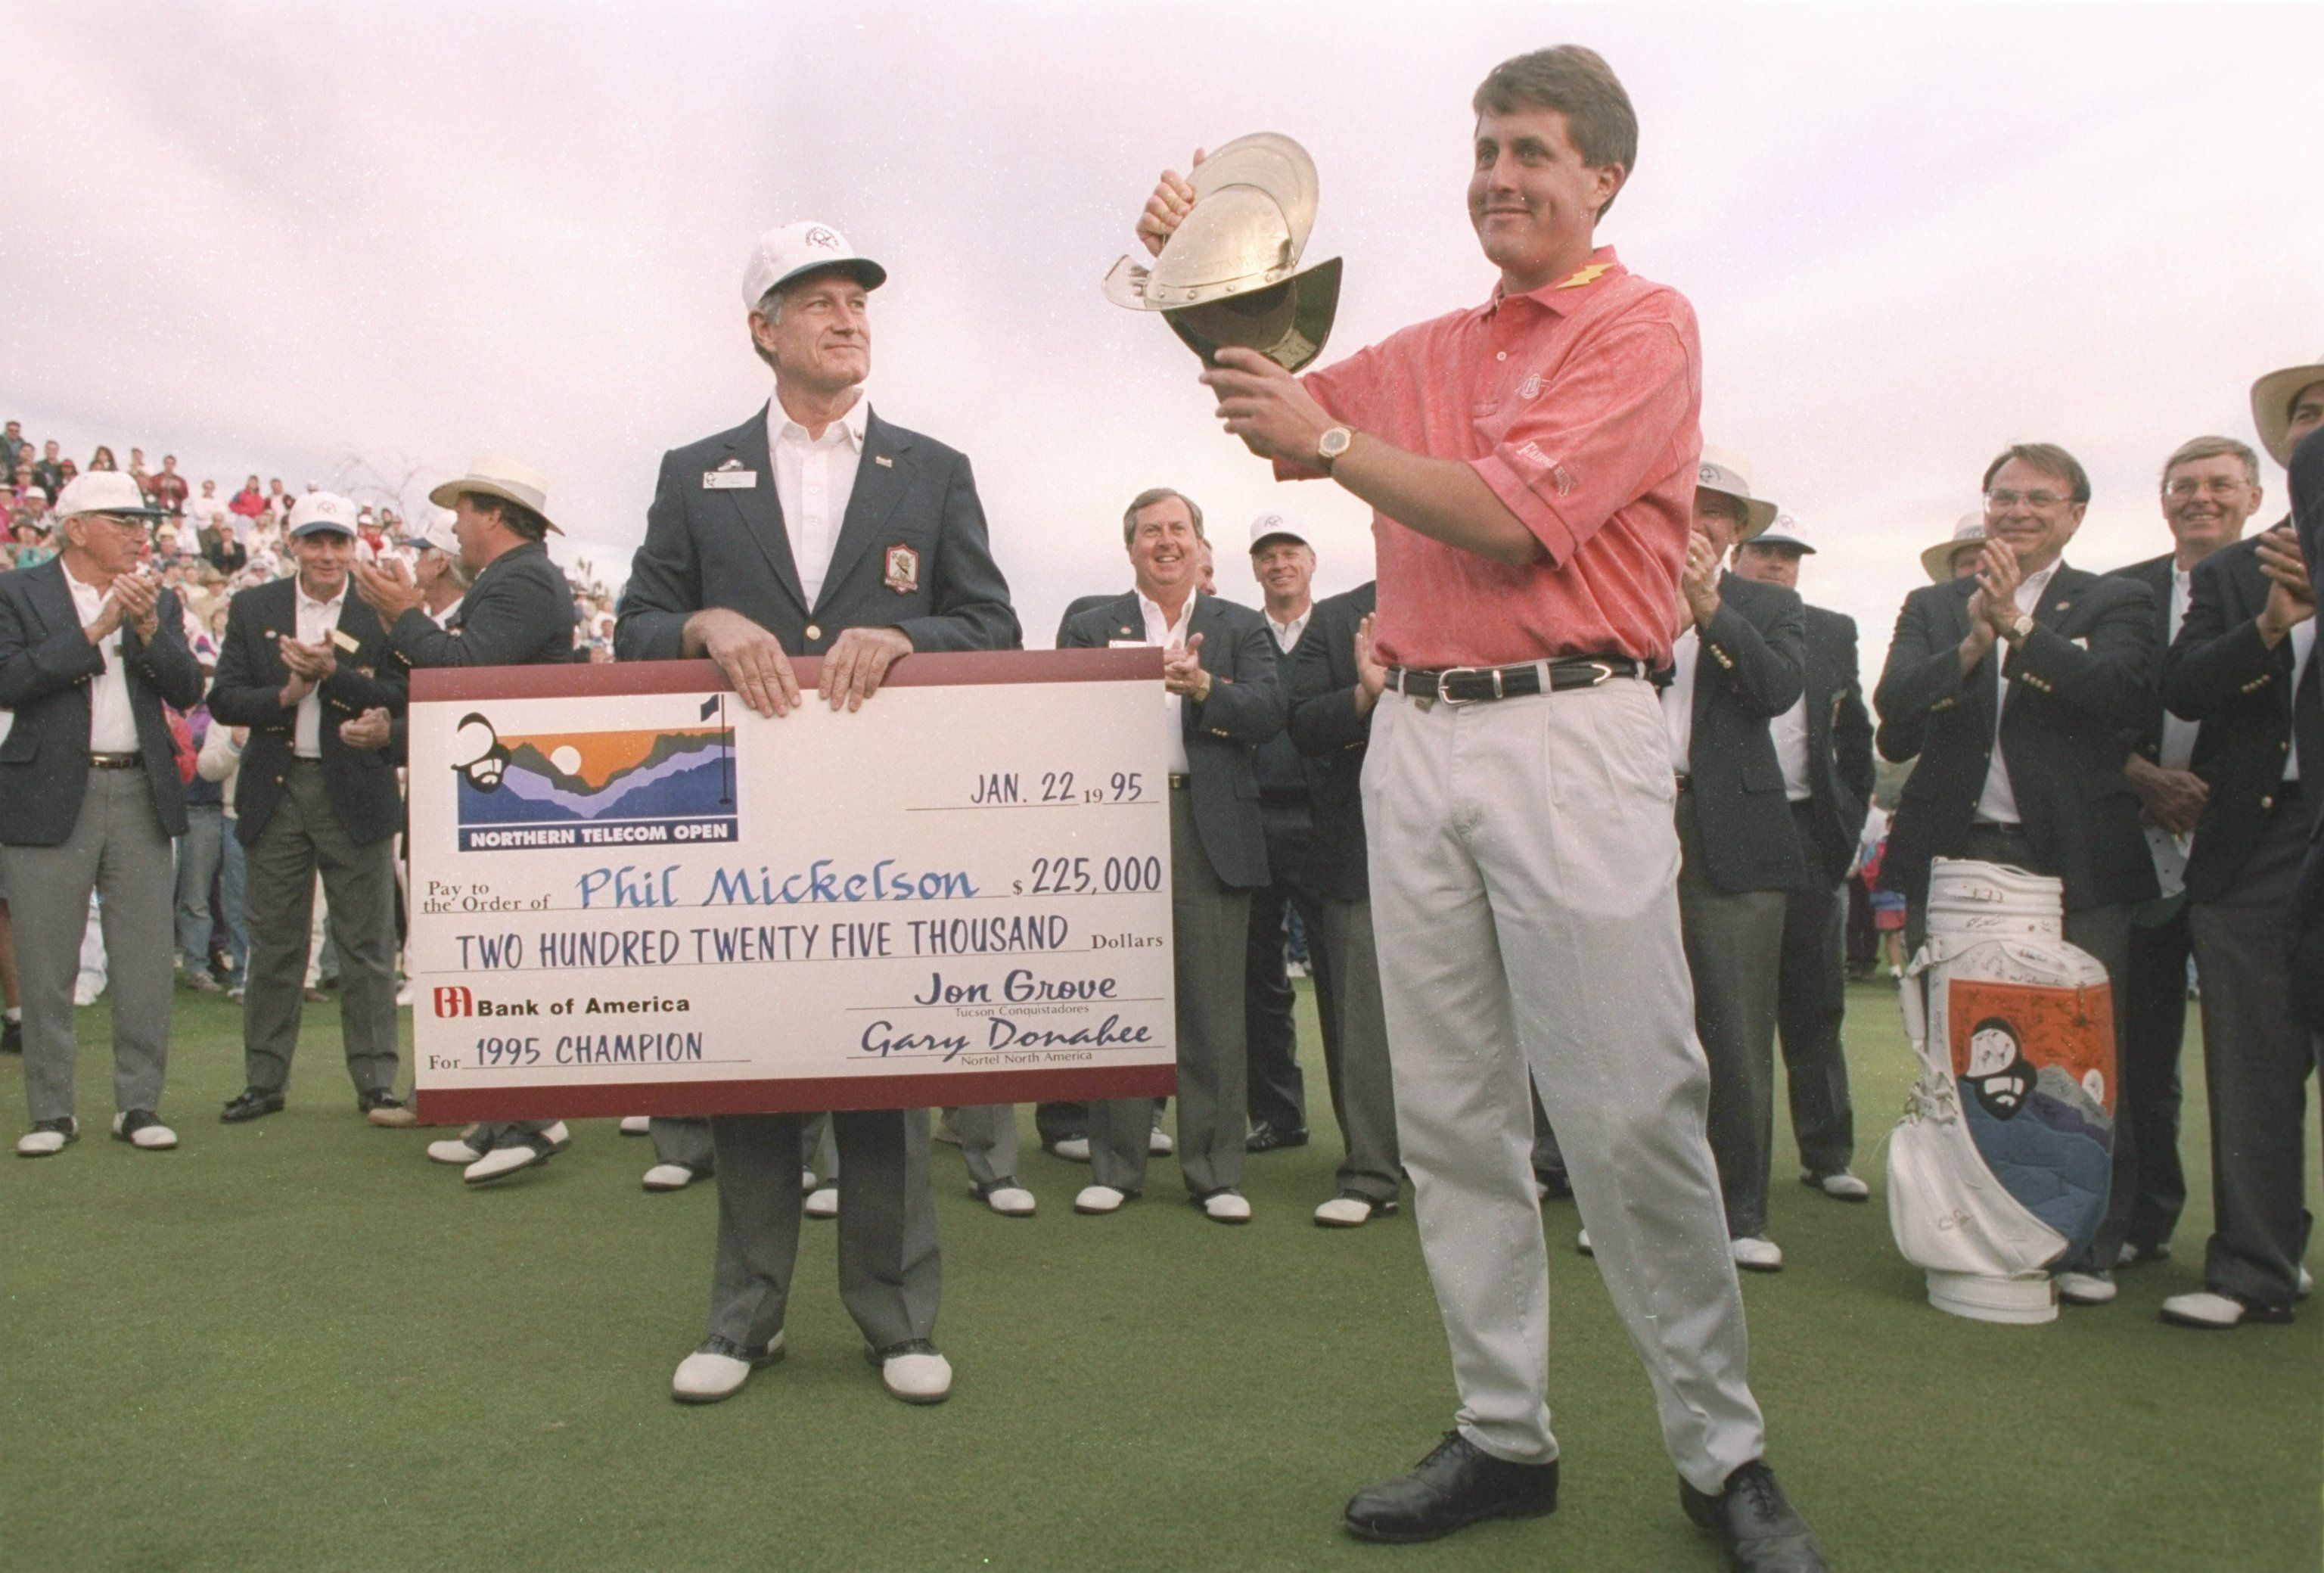 phil mickelson 1995 win at the northern telcom open